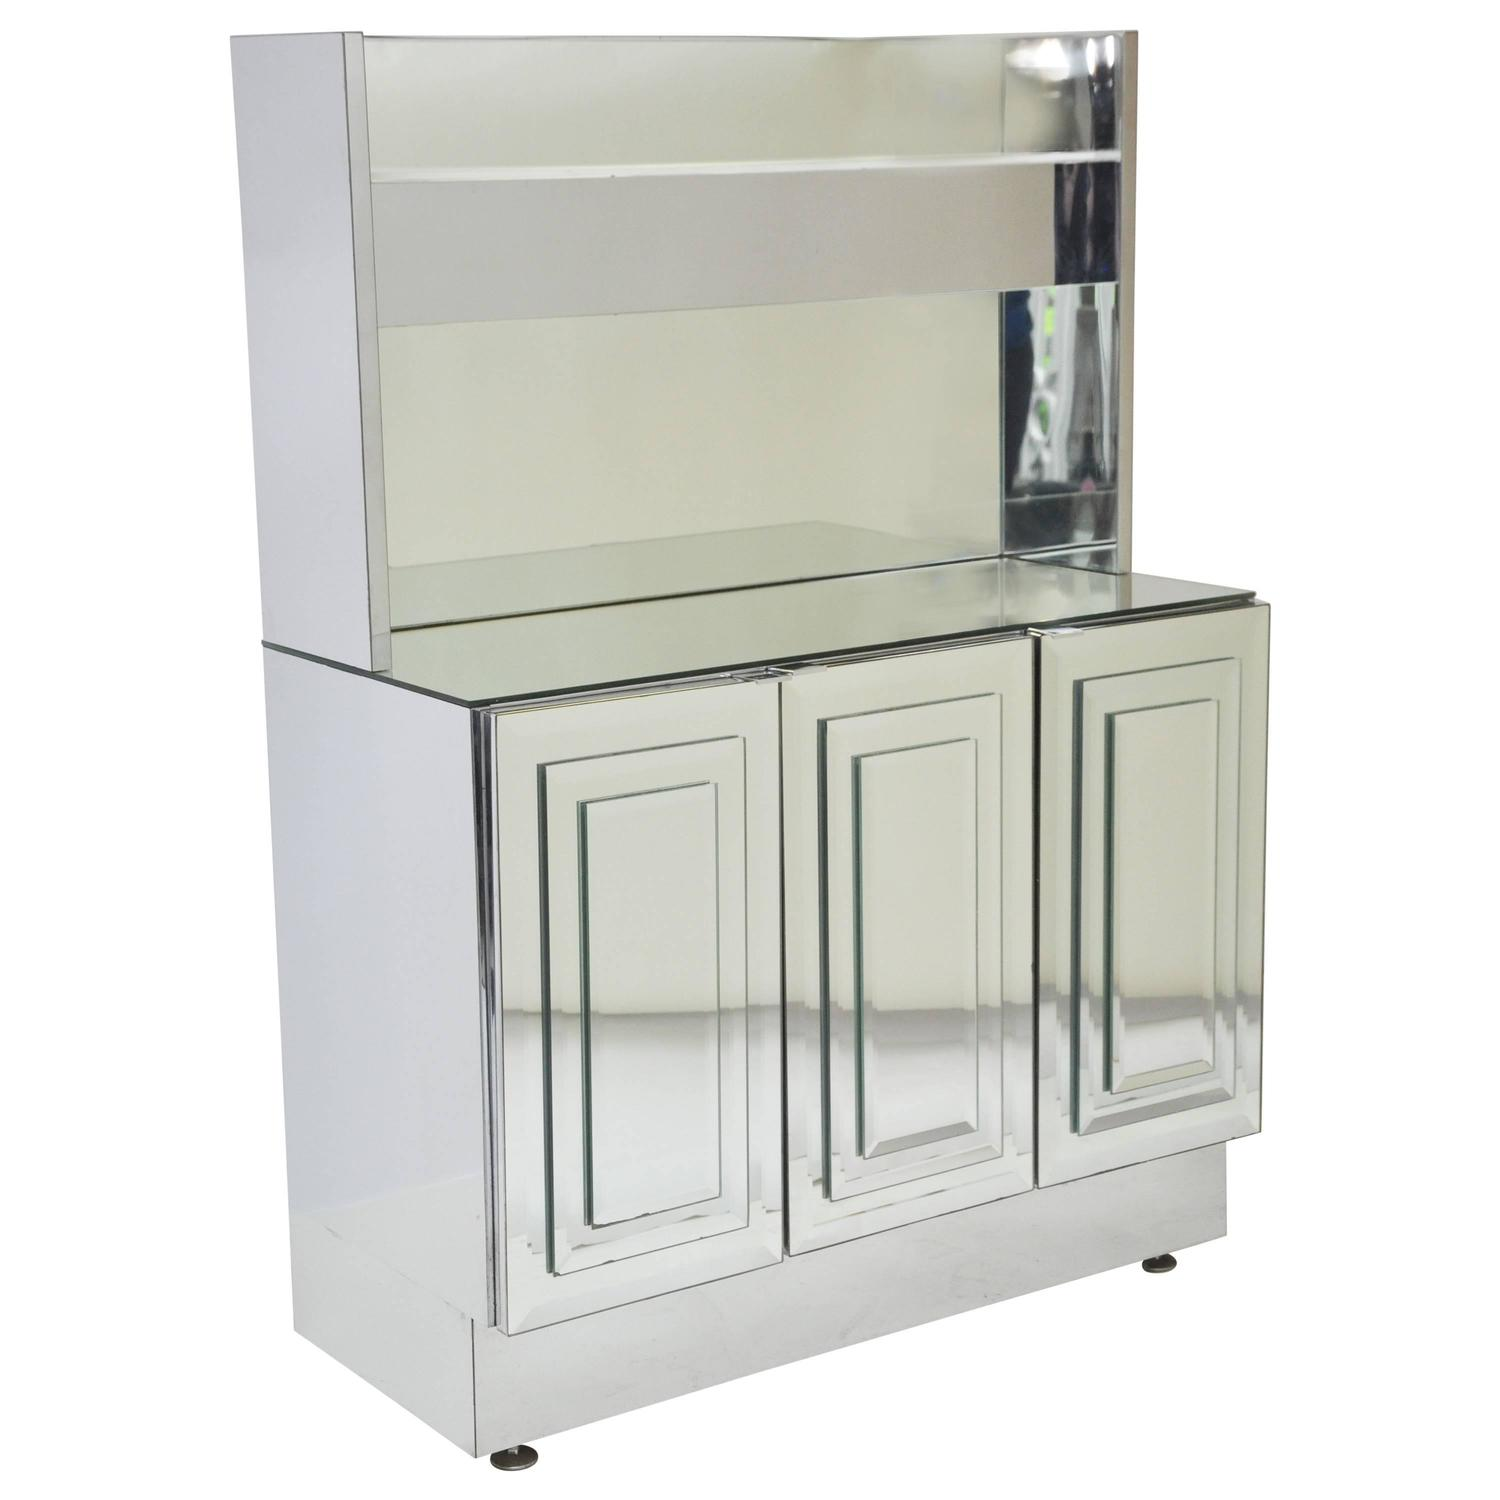 Ello cabinet with upper lit shelf for sale at 1stdibs for Upper cabinets for sale